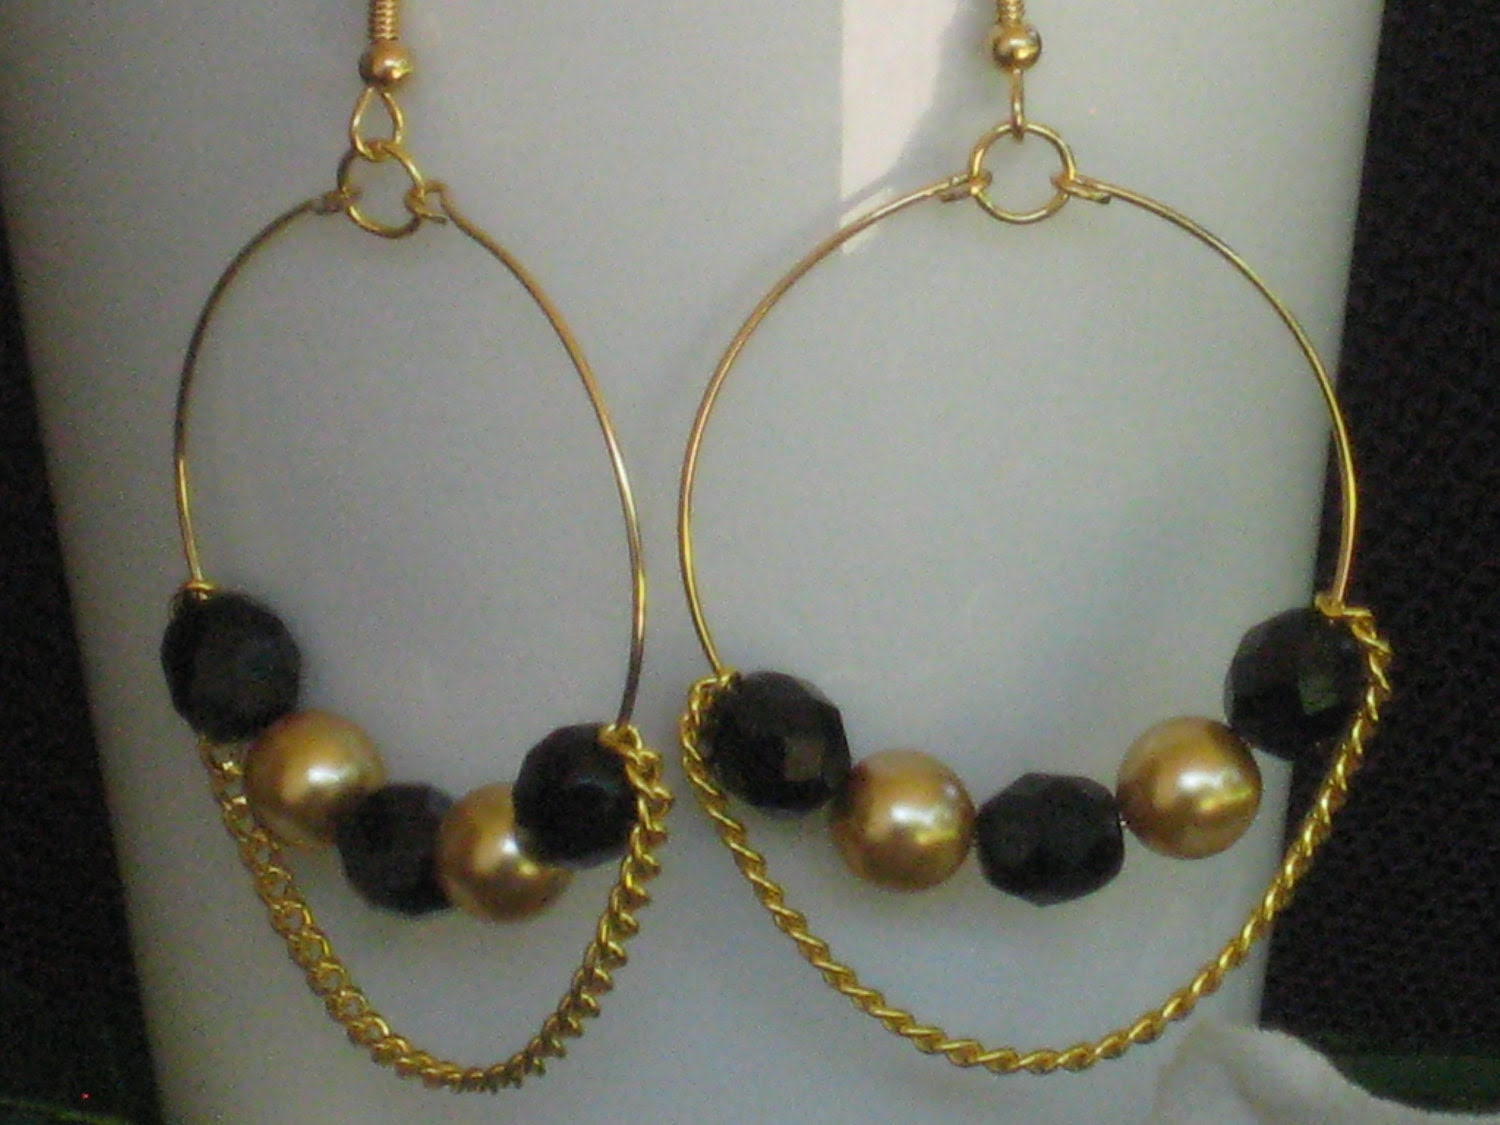 SALE: Black and Gold Beaded Chain Hoop Earrings